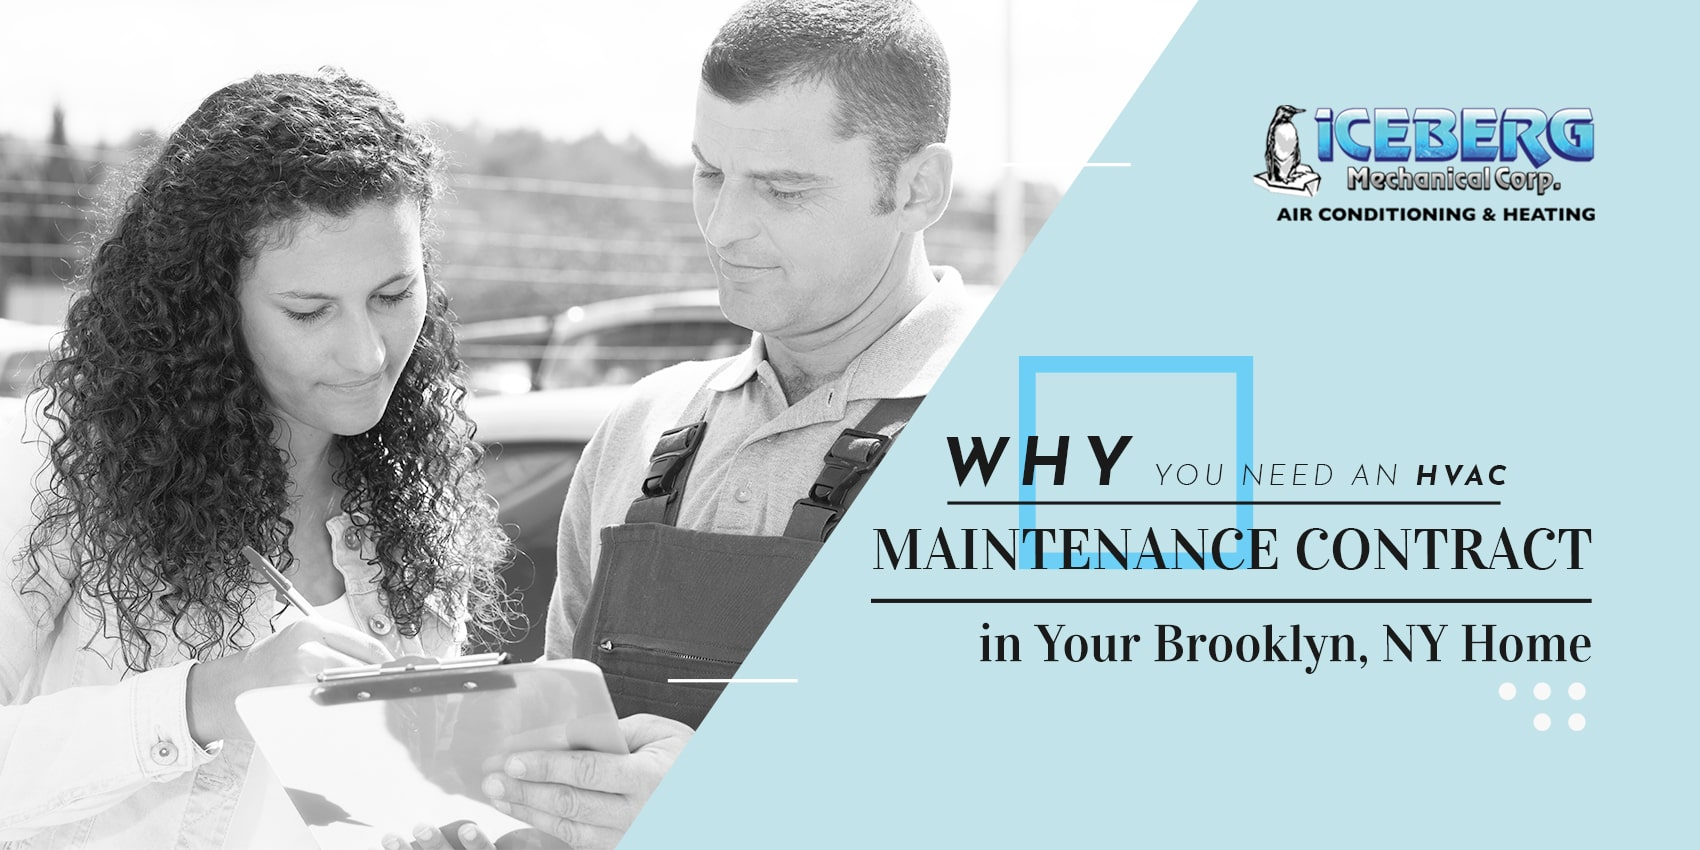 Why You Need an HVAC Maintenance Contract in Your Brooklyn, NY Home